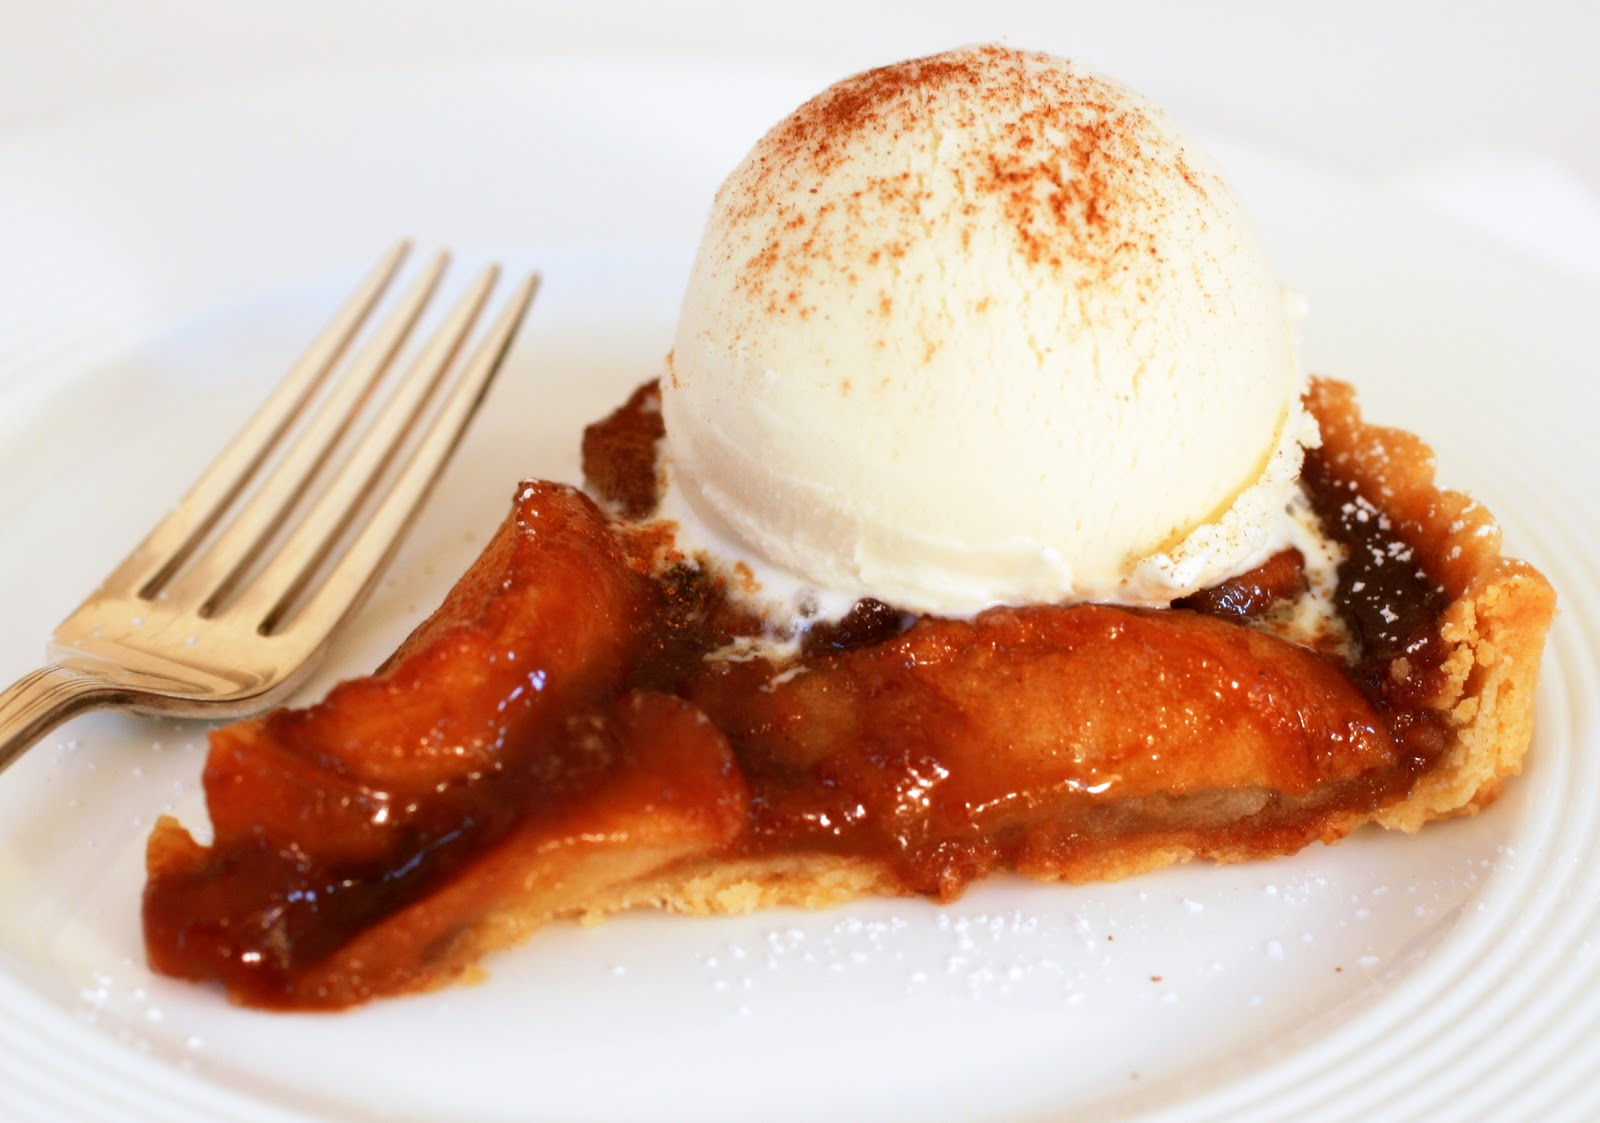 Tish Boyle Sweet Dreams: Caramel Apple Tart